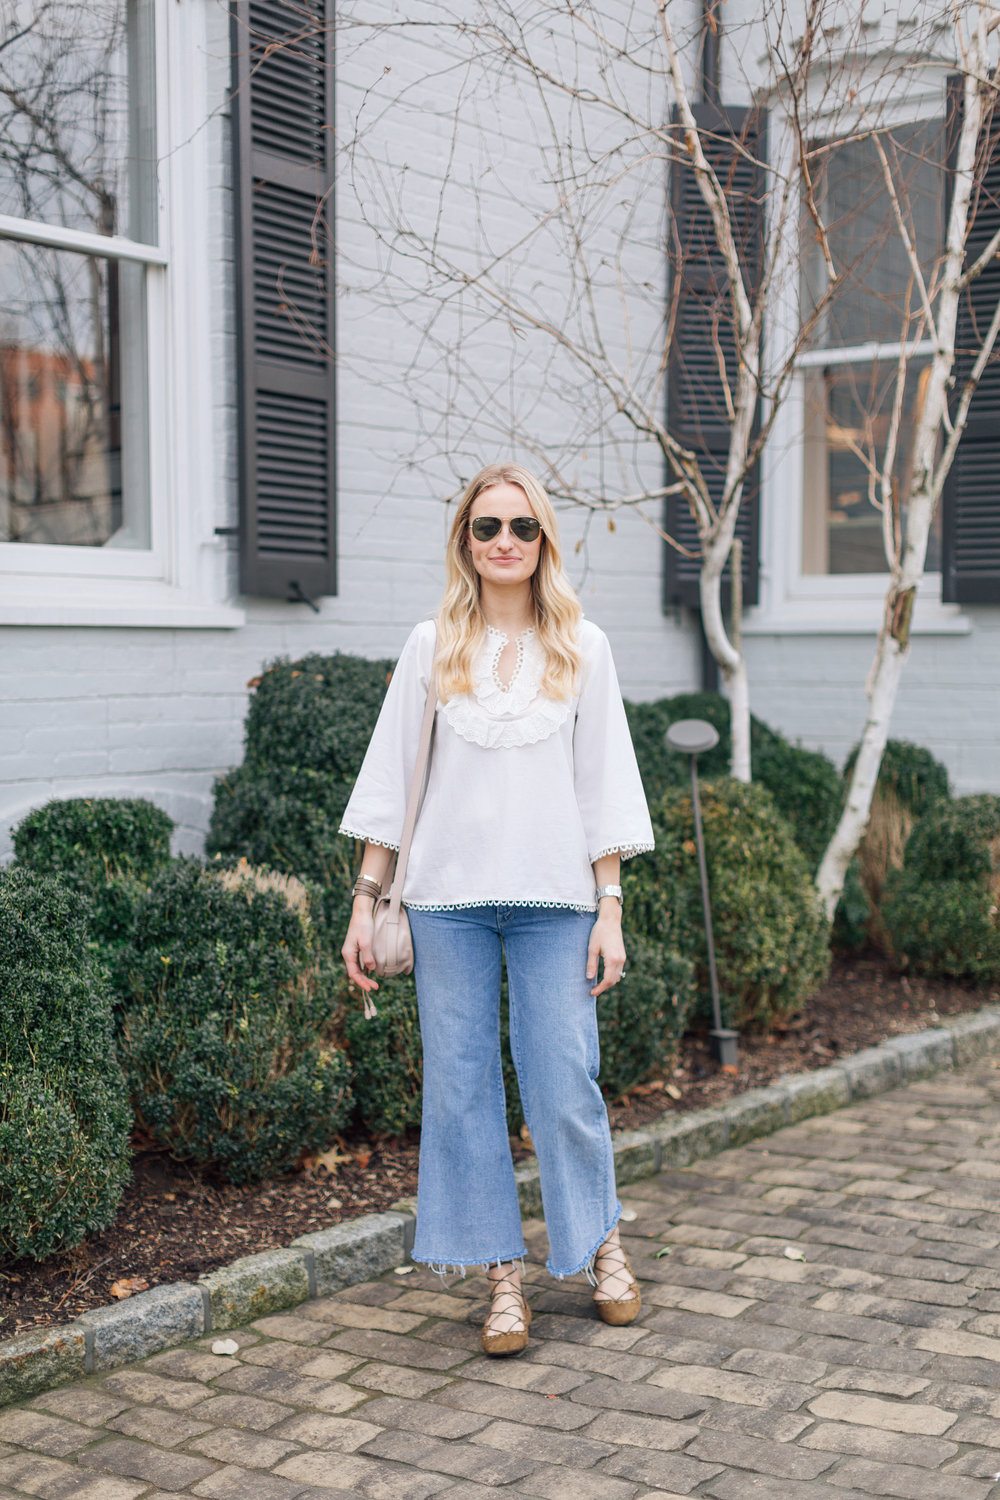 shopbop-stephanietrotta-thegirlguide